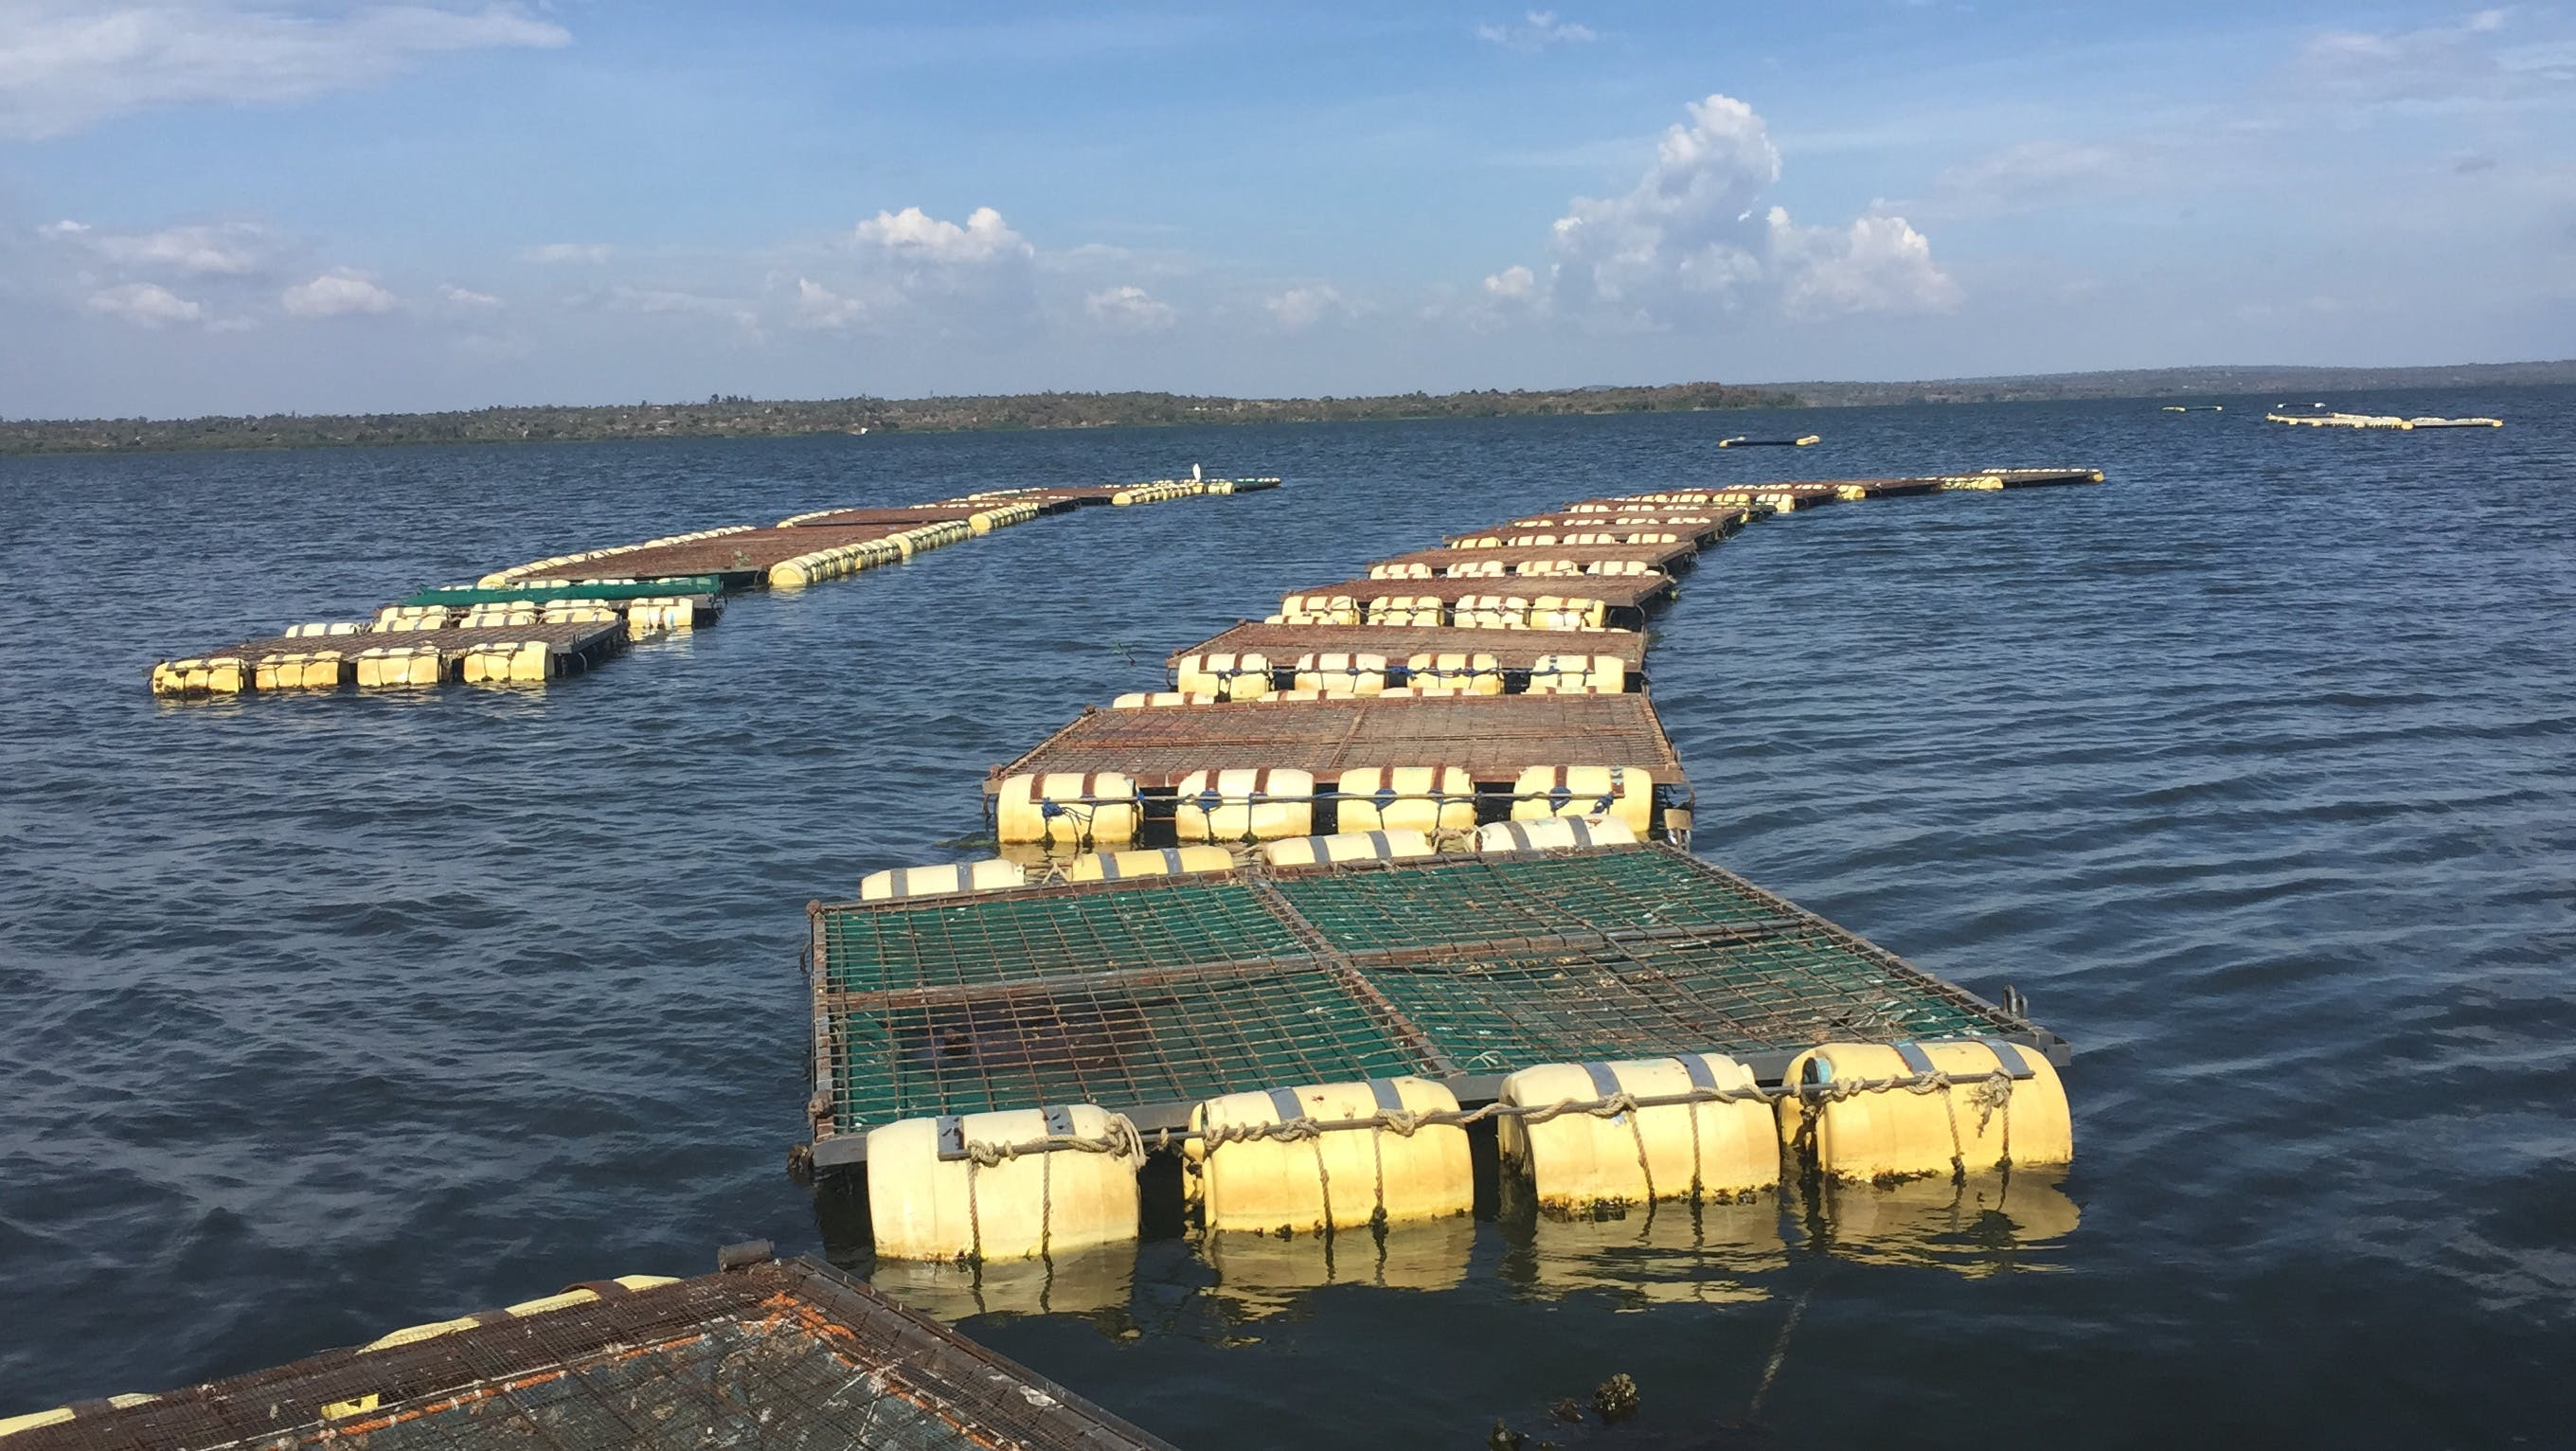 Cages of Hope on Lake Victoria